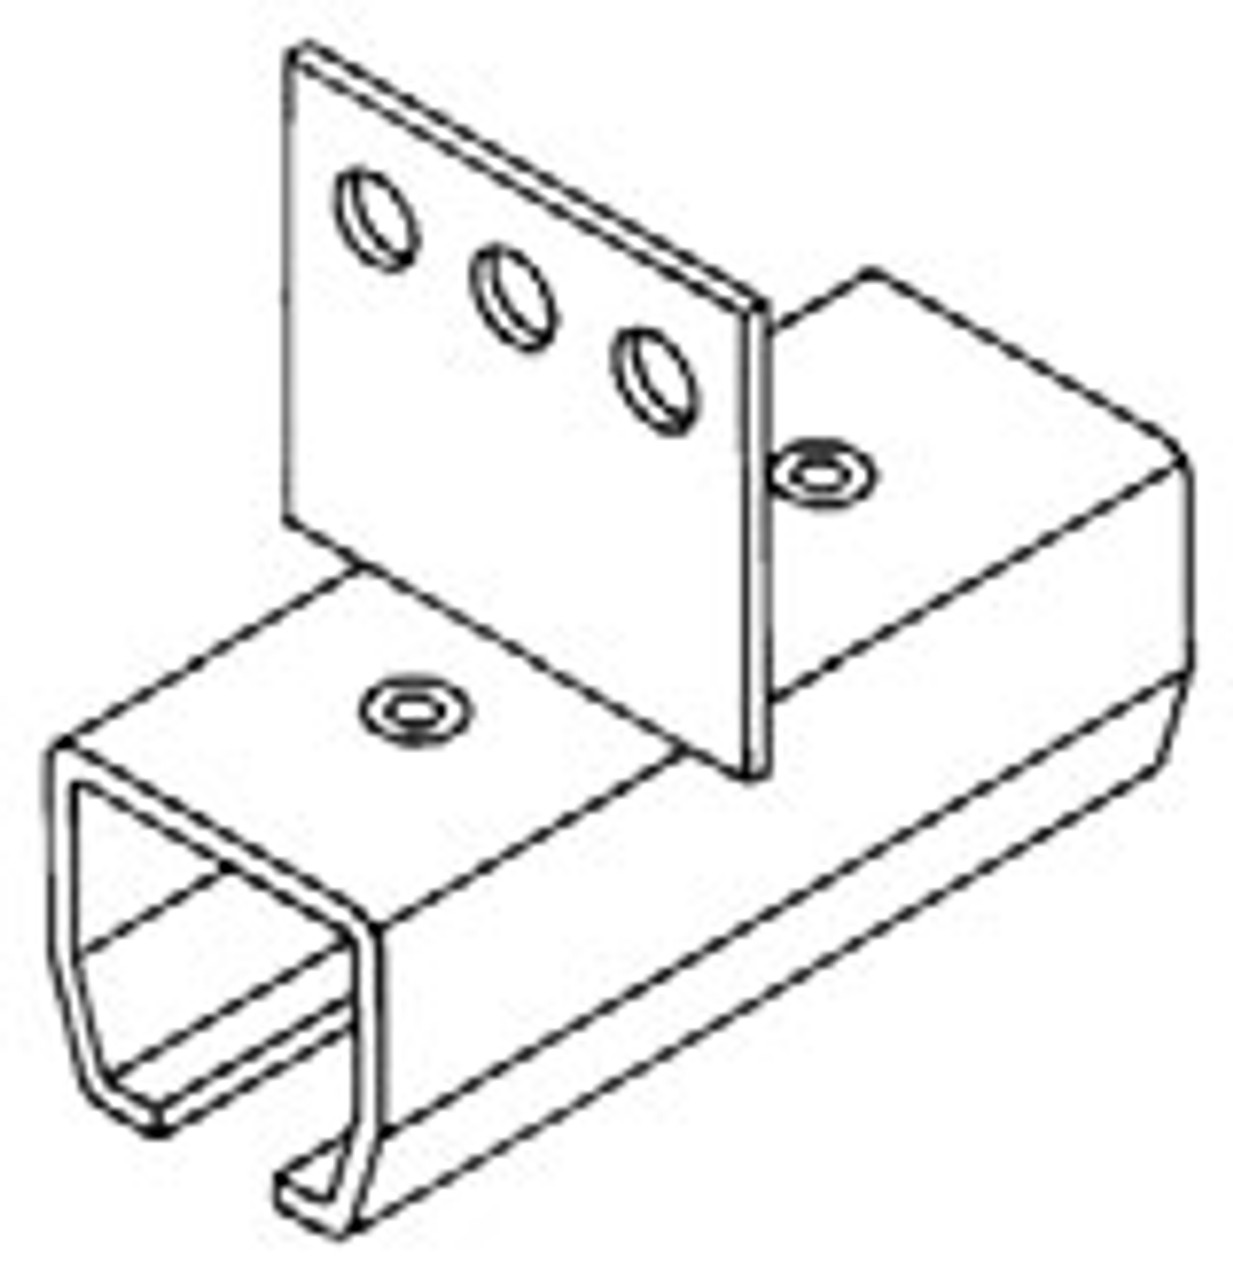 Beam or Chain Support Mount